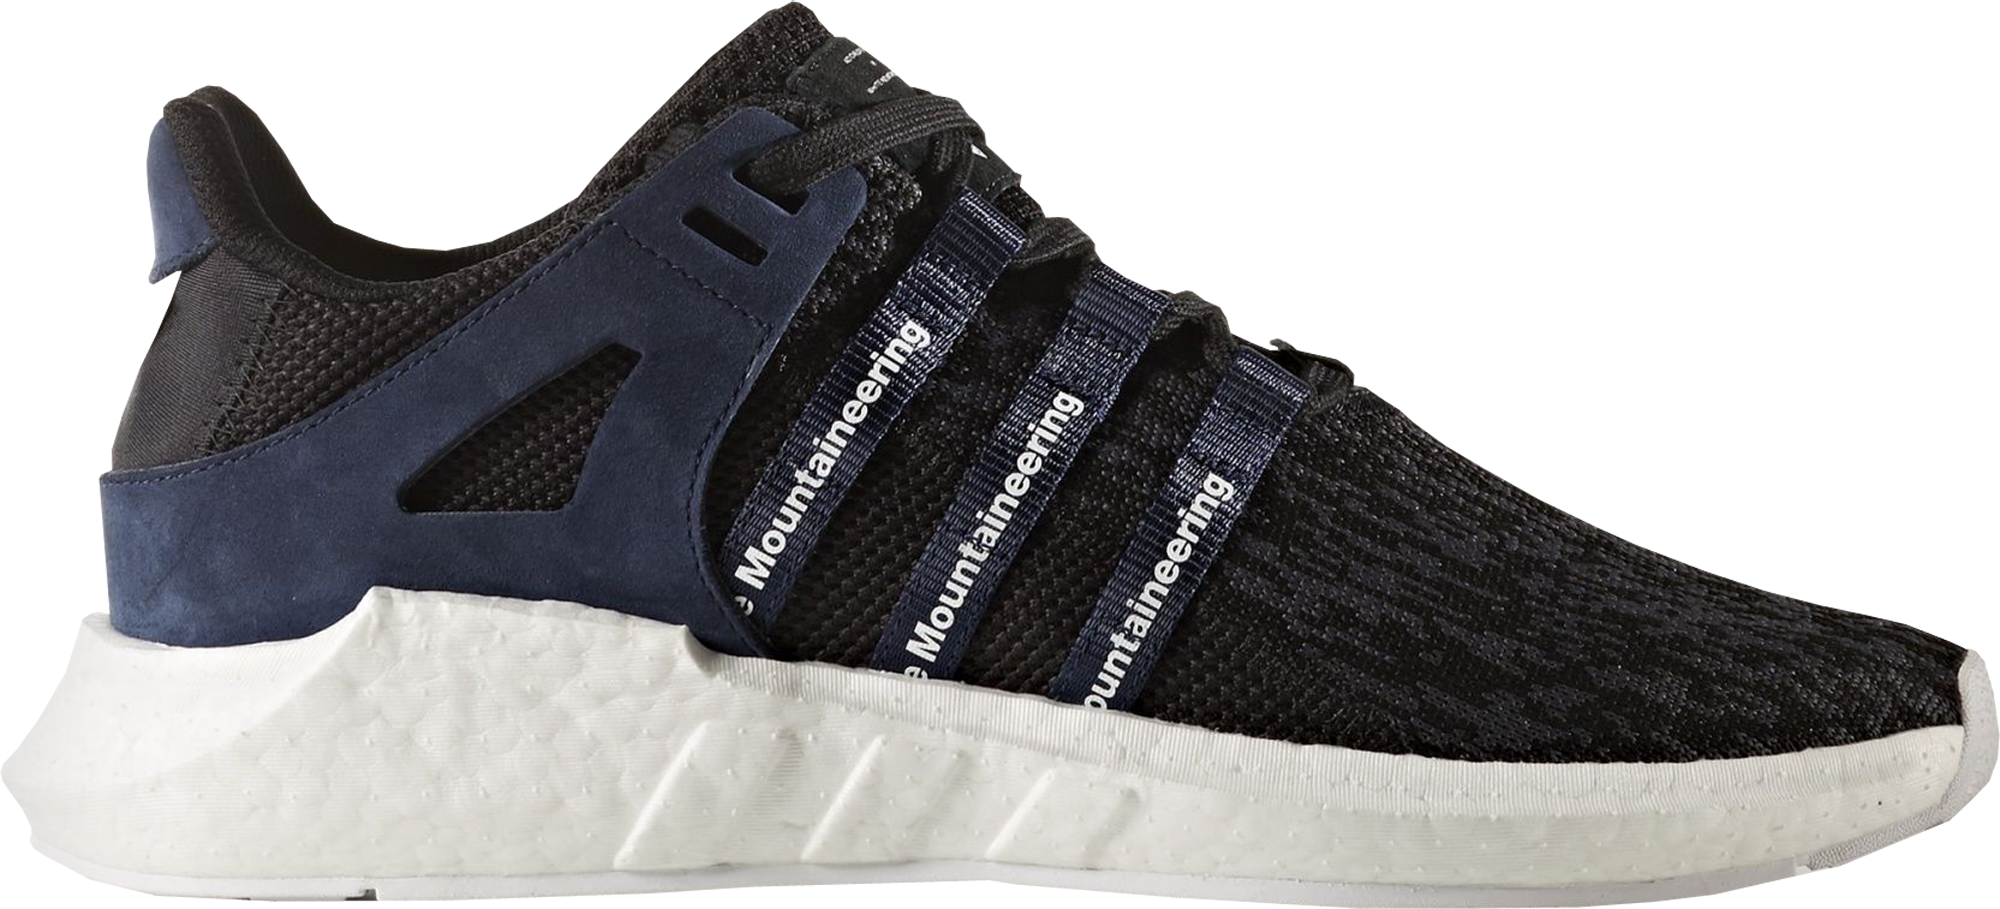 adidas EQT Support Future White Mountaineering Navy